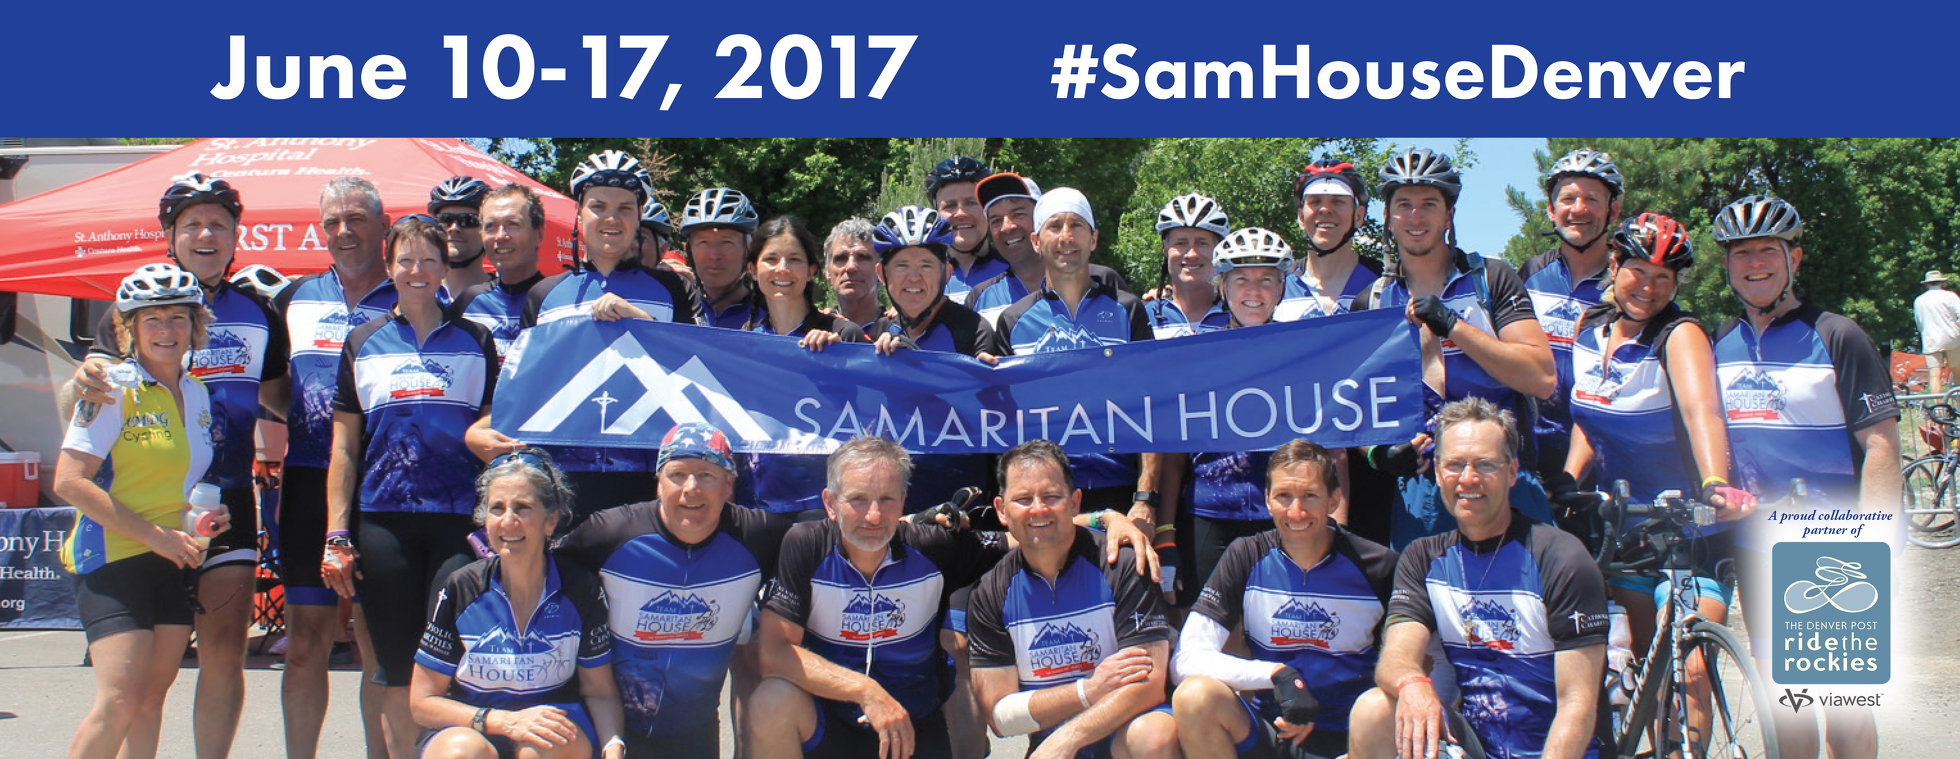 Ride the Rockies 2017